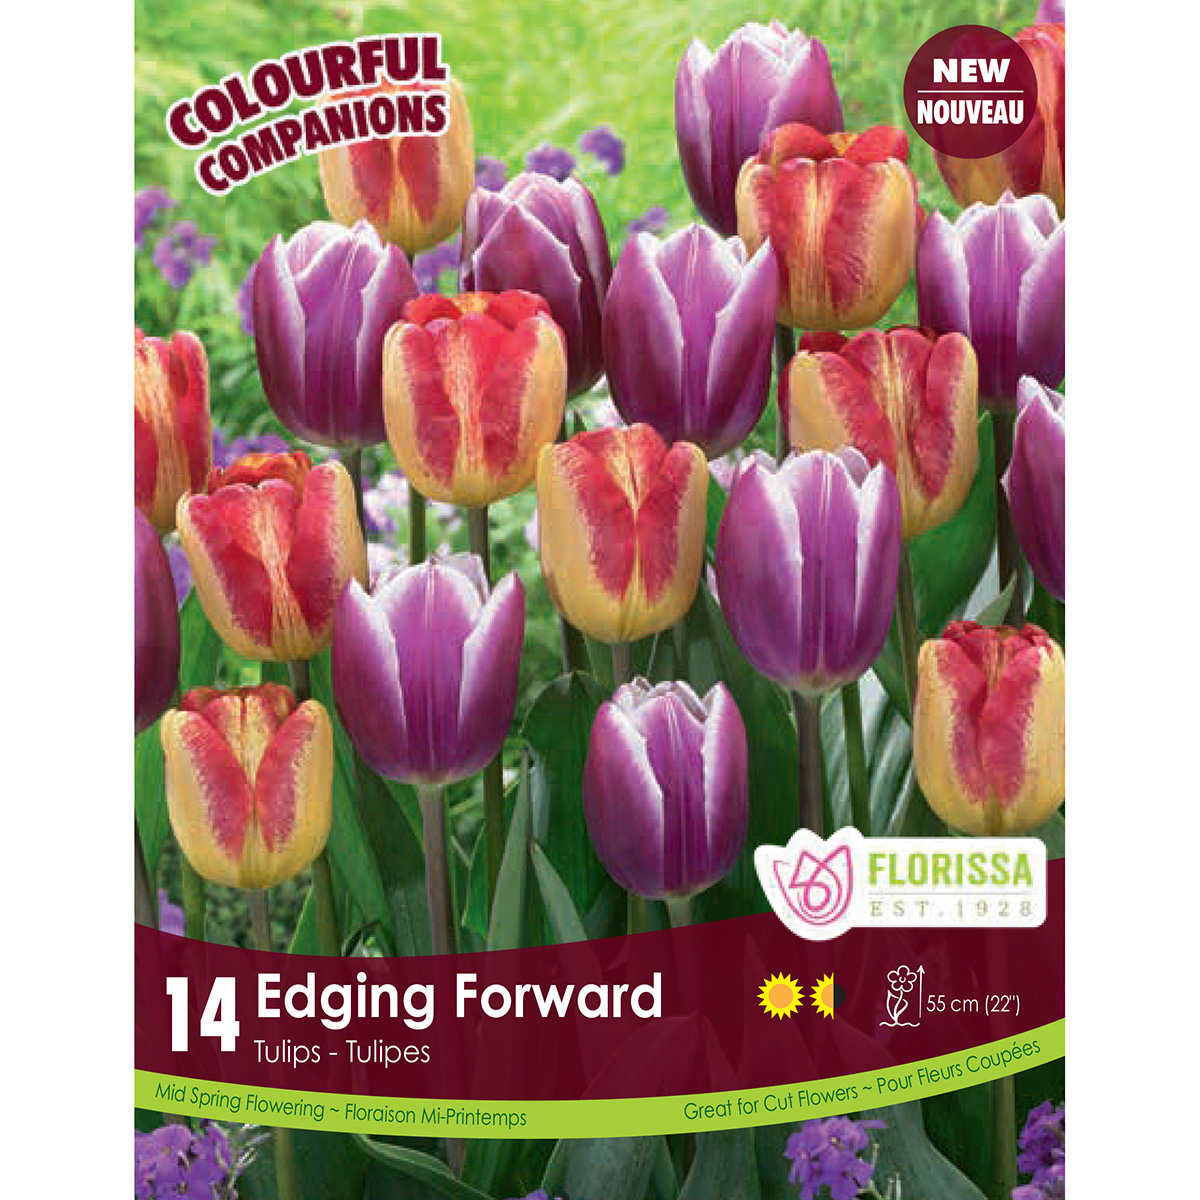 Colourful Companions Tulipa 'Edging Forward' Bulbs